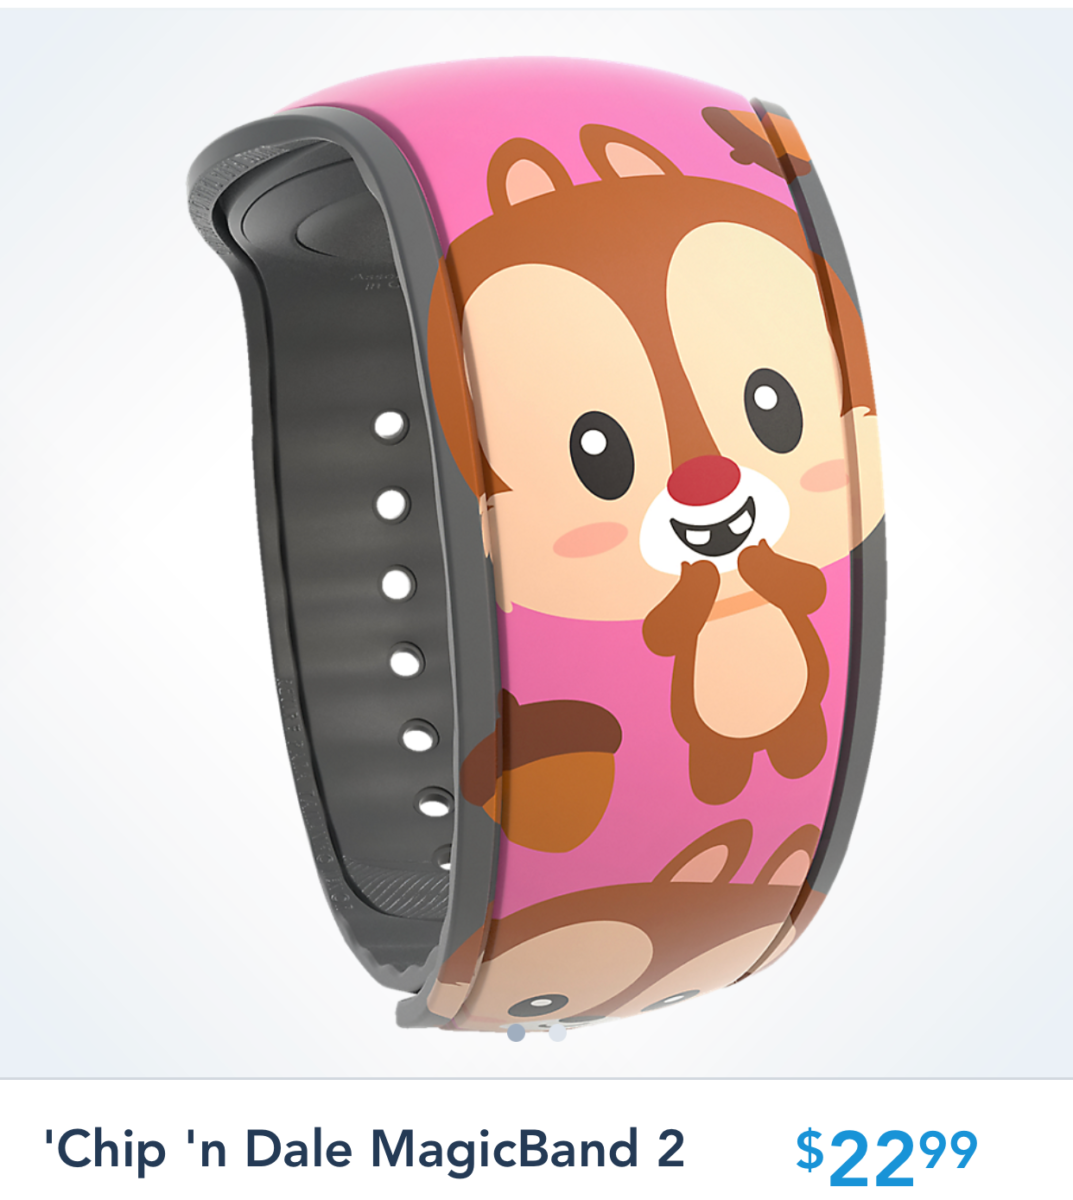 Fashionably Fun MagicBands Courtesy of ShopDisney! #DisneyStyle 6